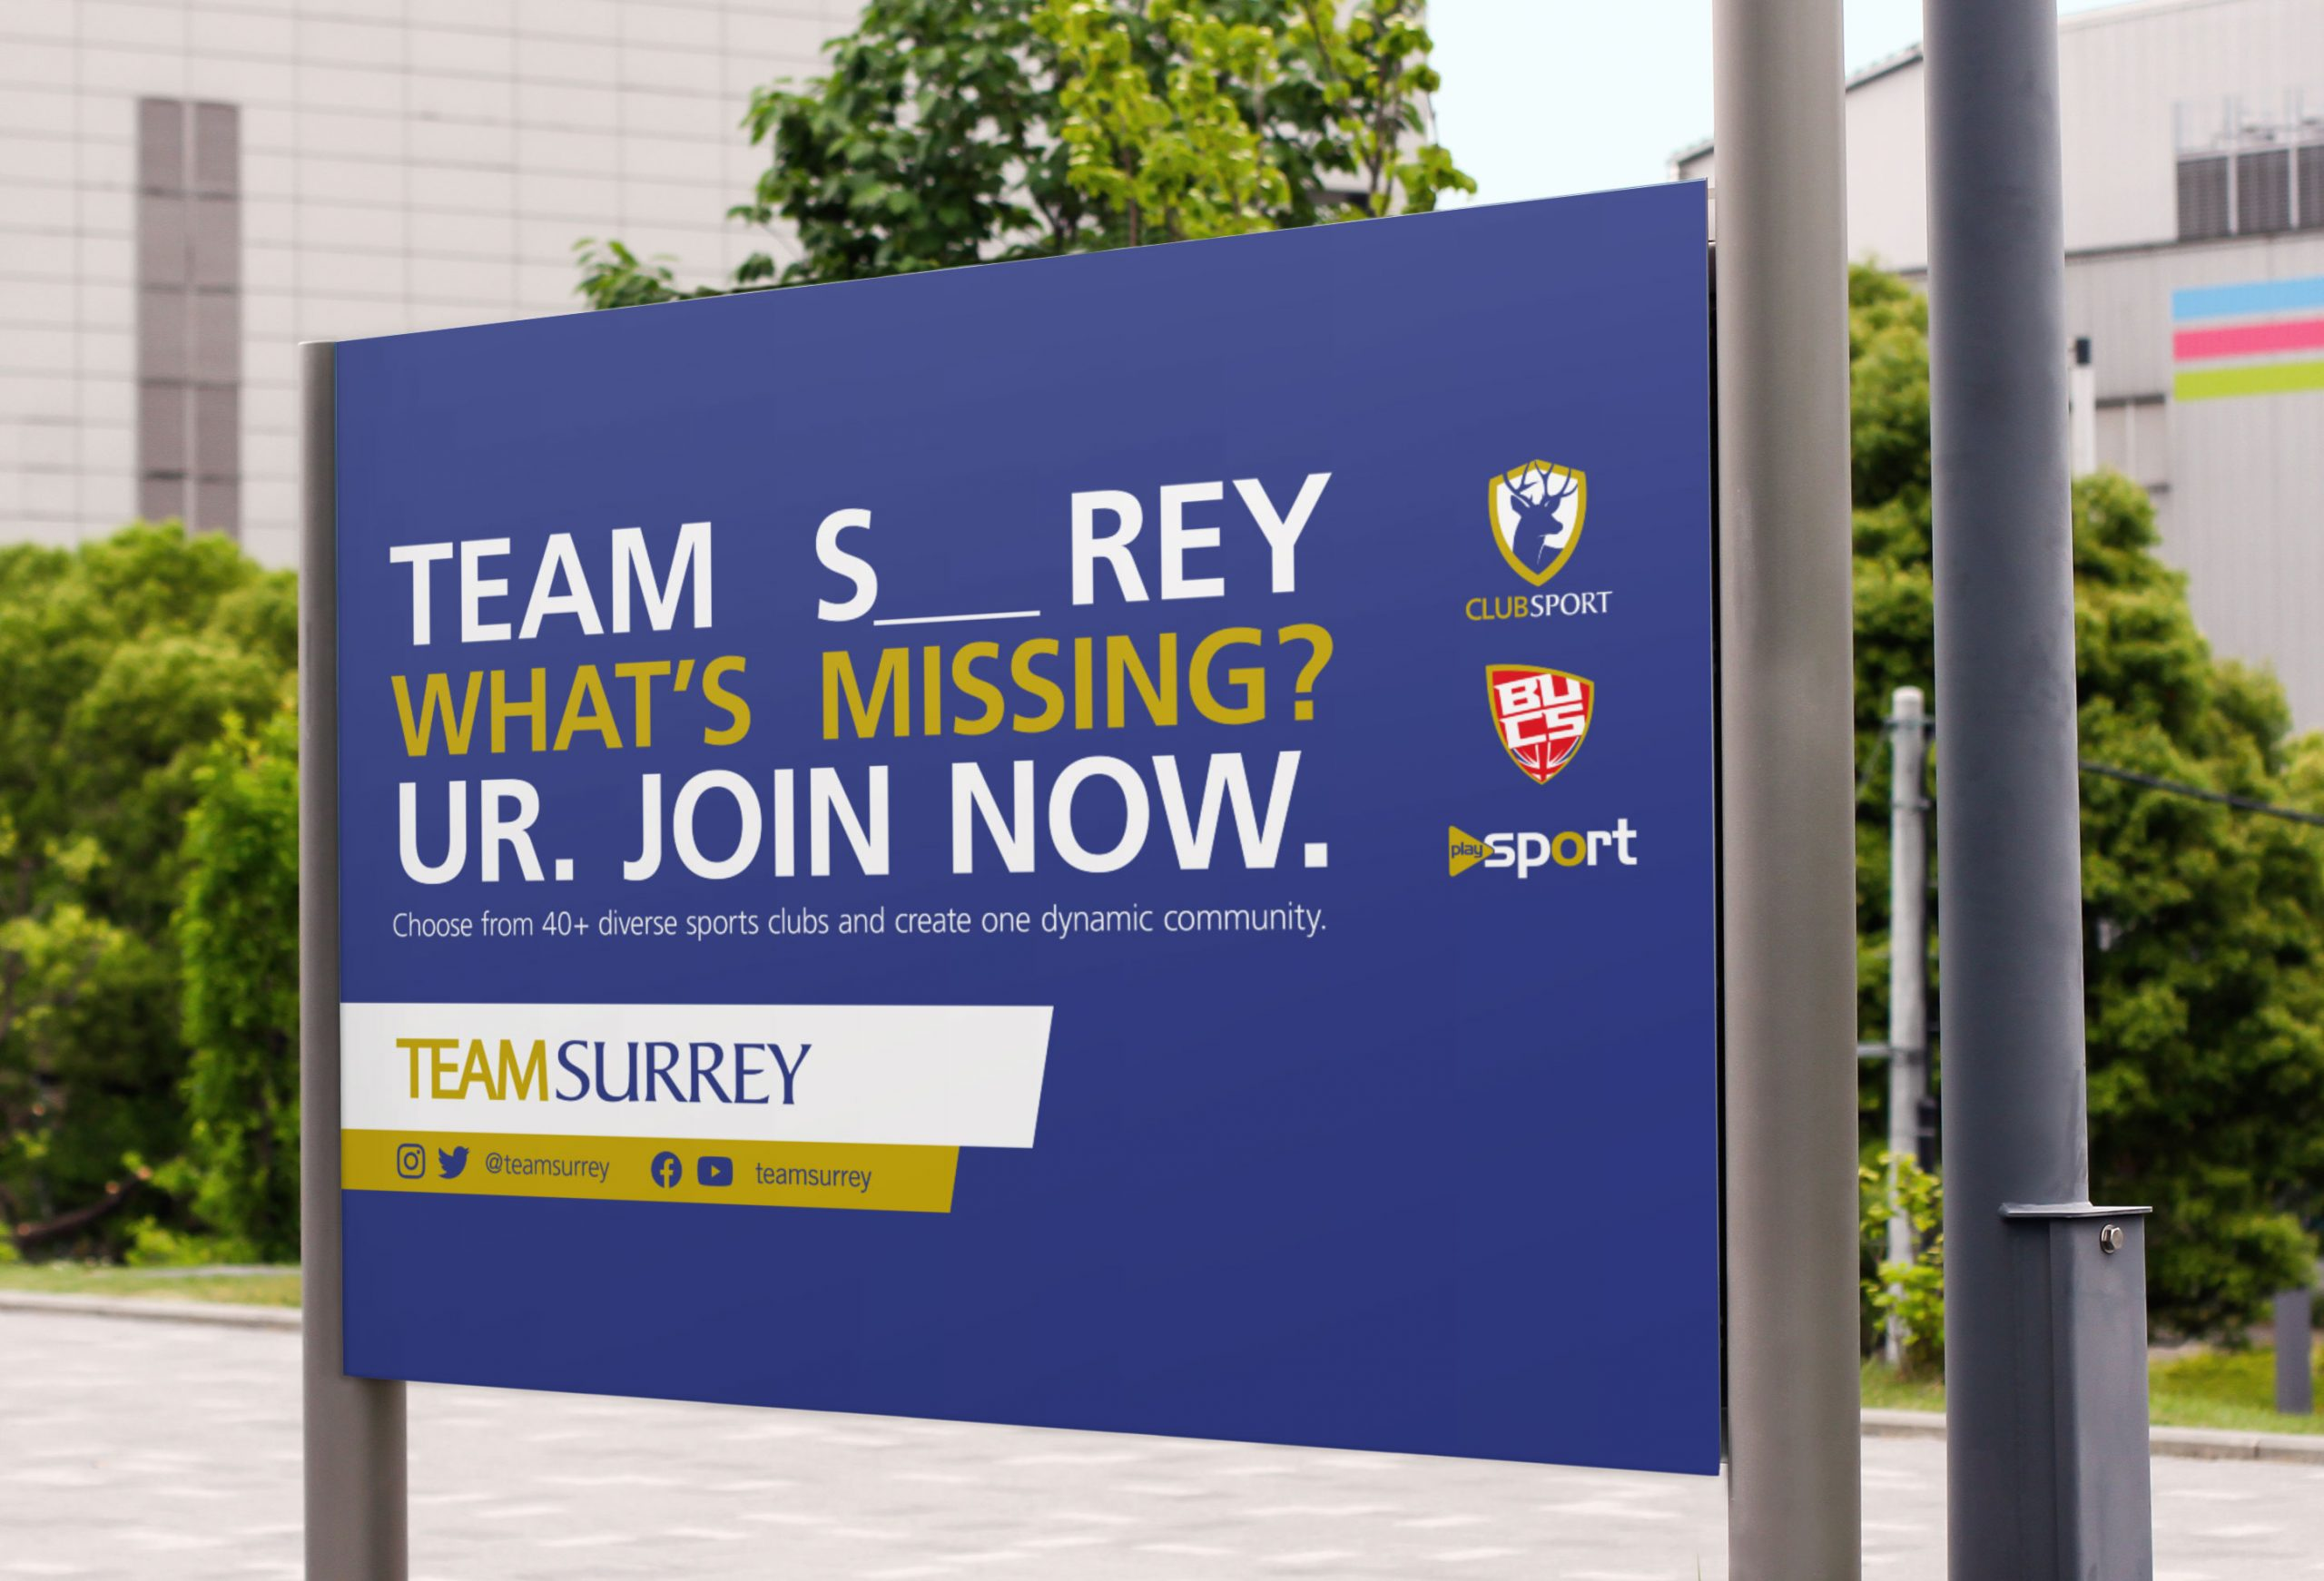 Team Surrey signboard reminding students that they should join